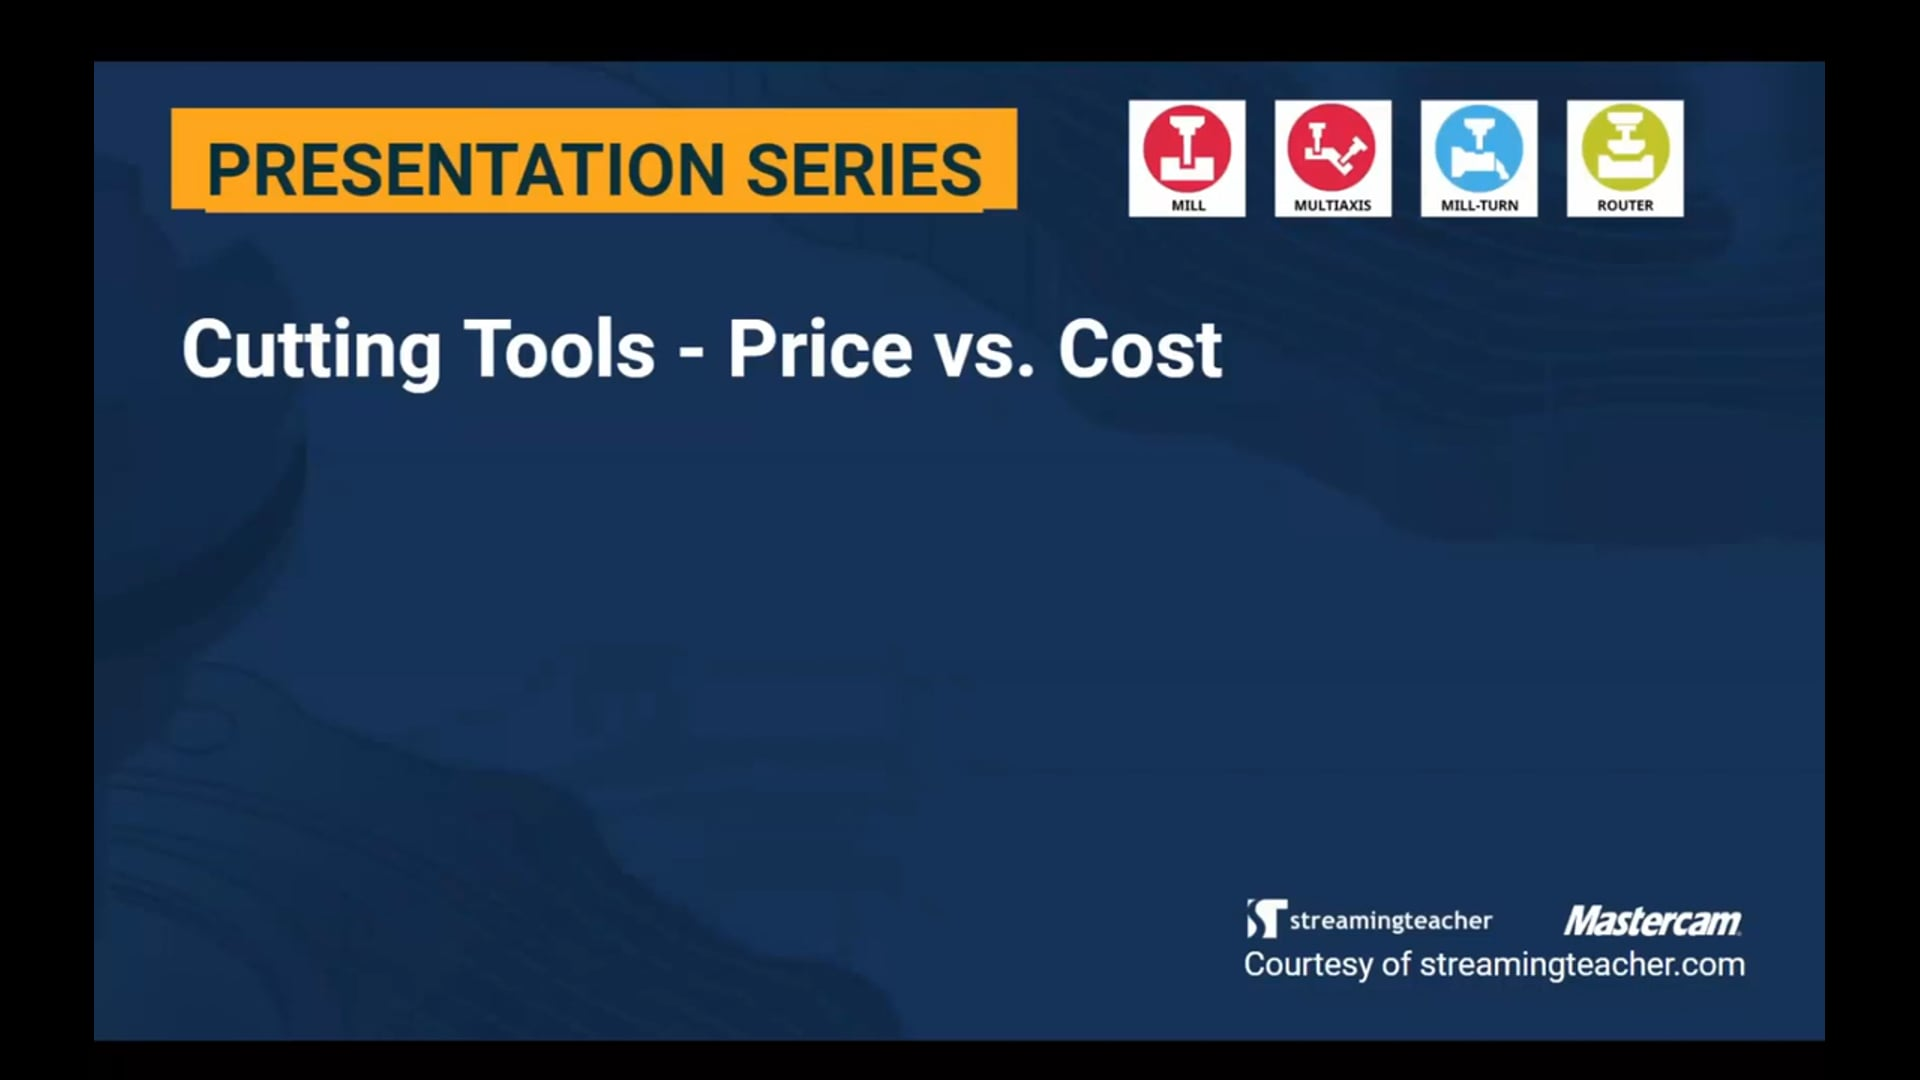 Cutting Tools - Price vs. Cost